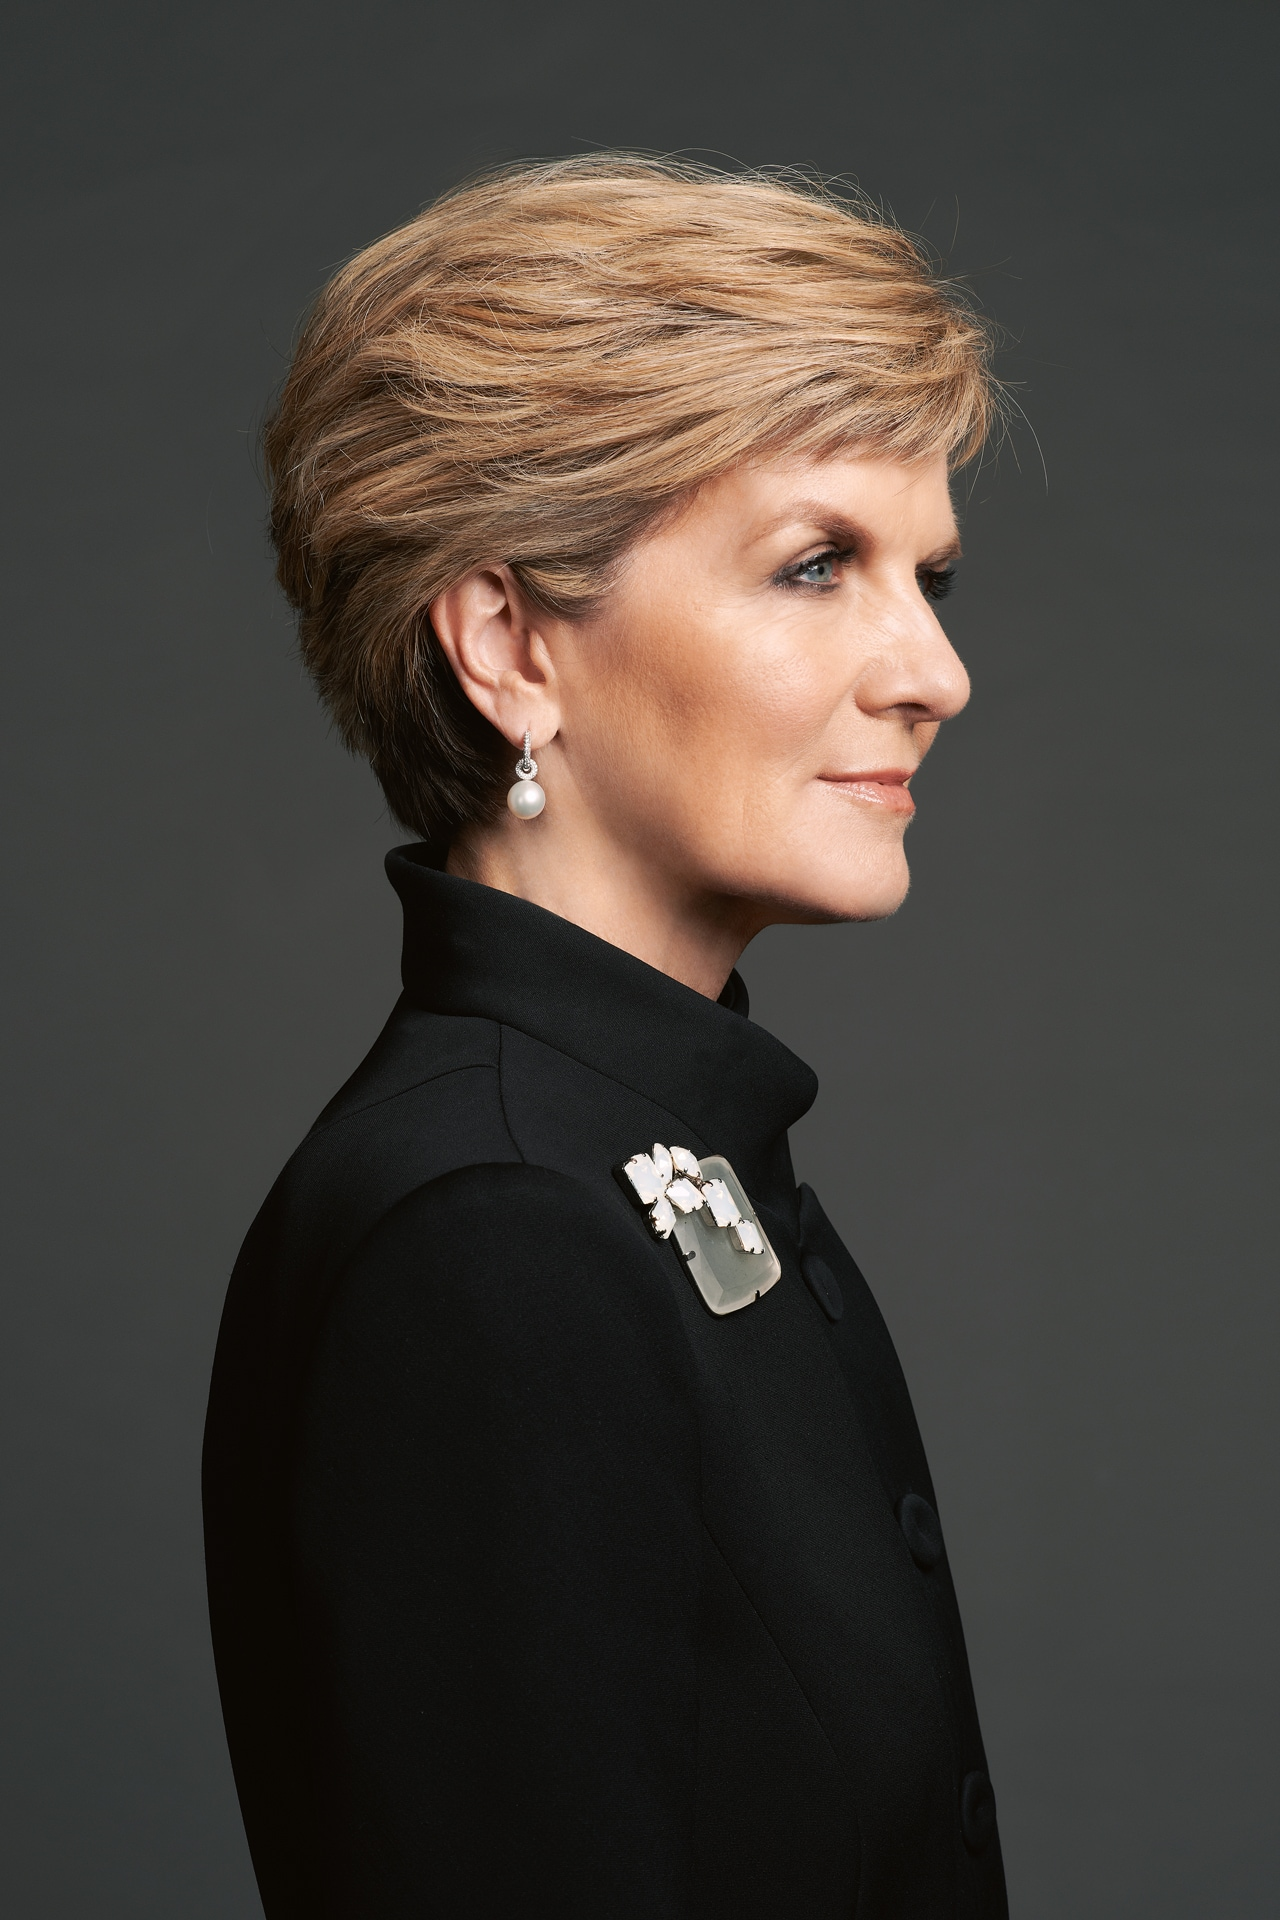 Julie Bishop on women's empowerment, role models and the future for Australian girls